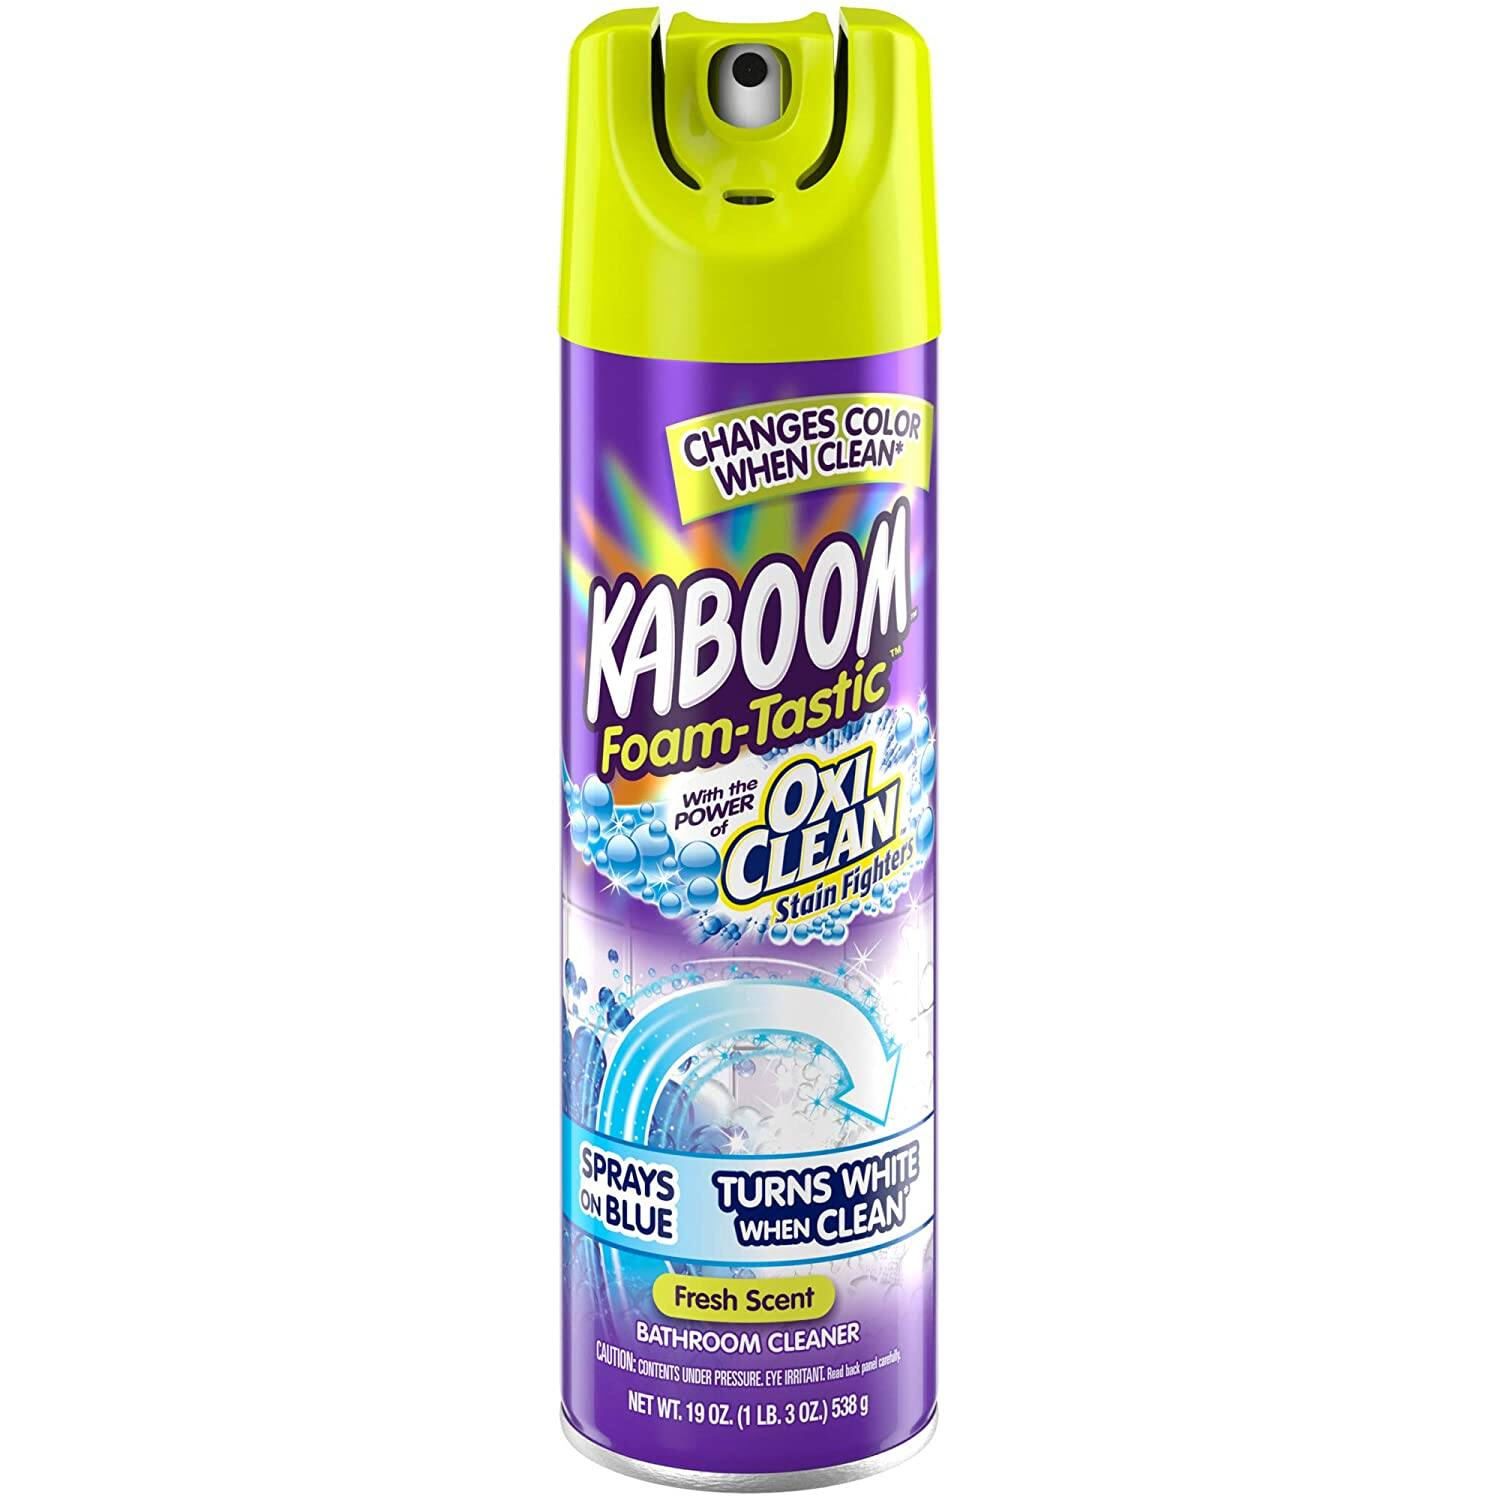 Kaboom Foam-Tastic with Oxiclean Fresh, 19 Ounce (Pack of 8) $7.72 @Amazon